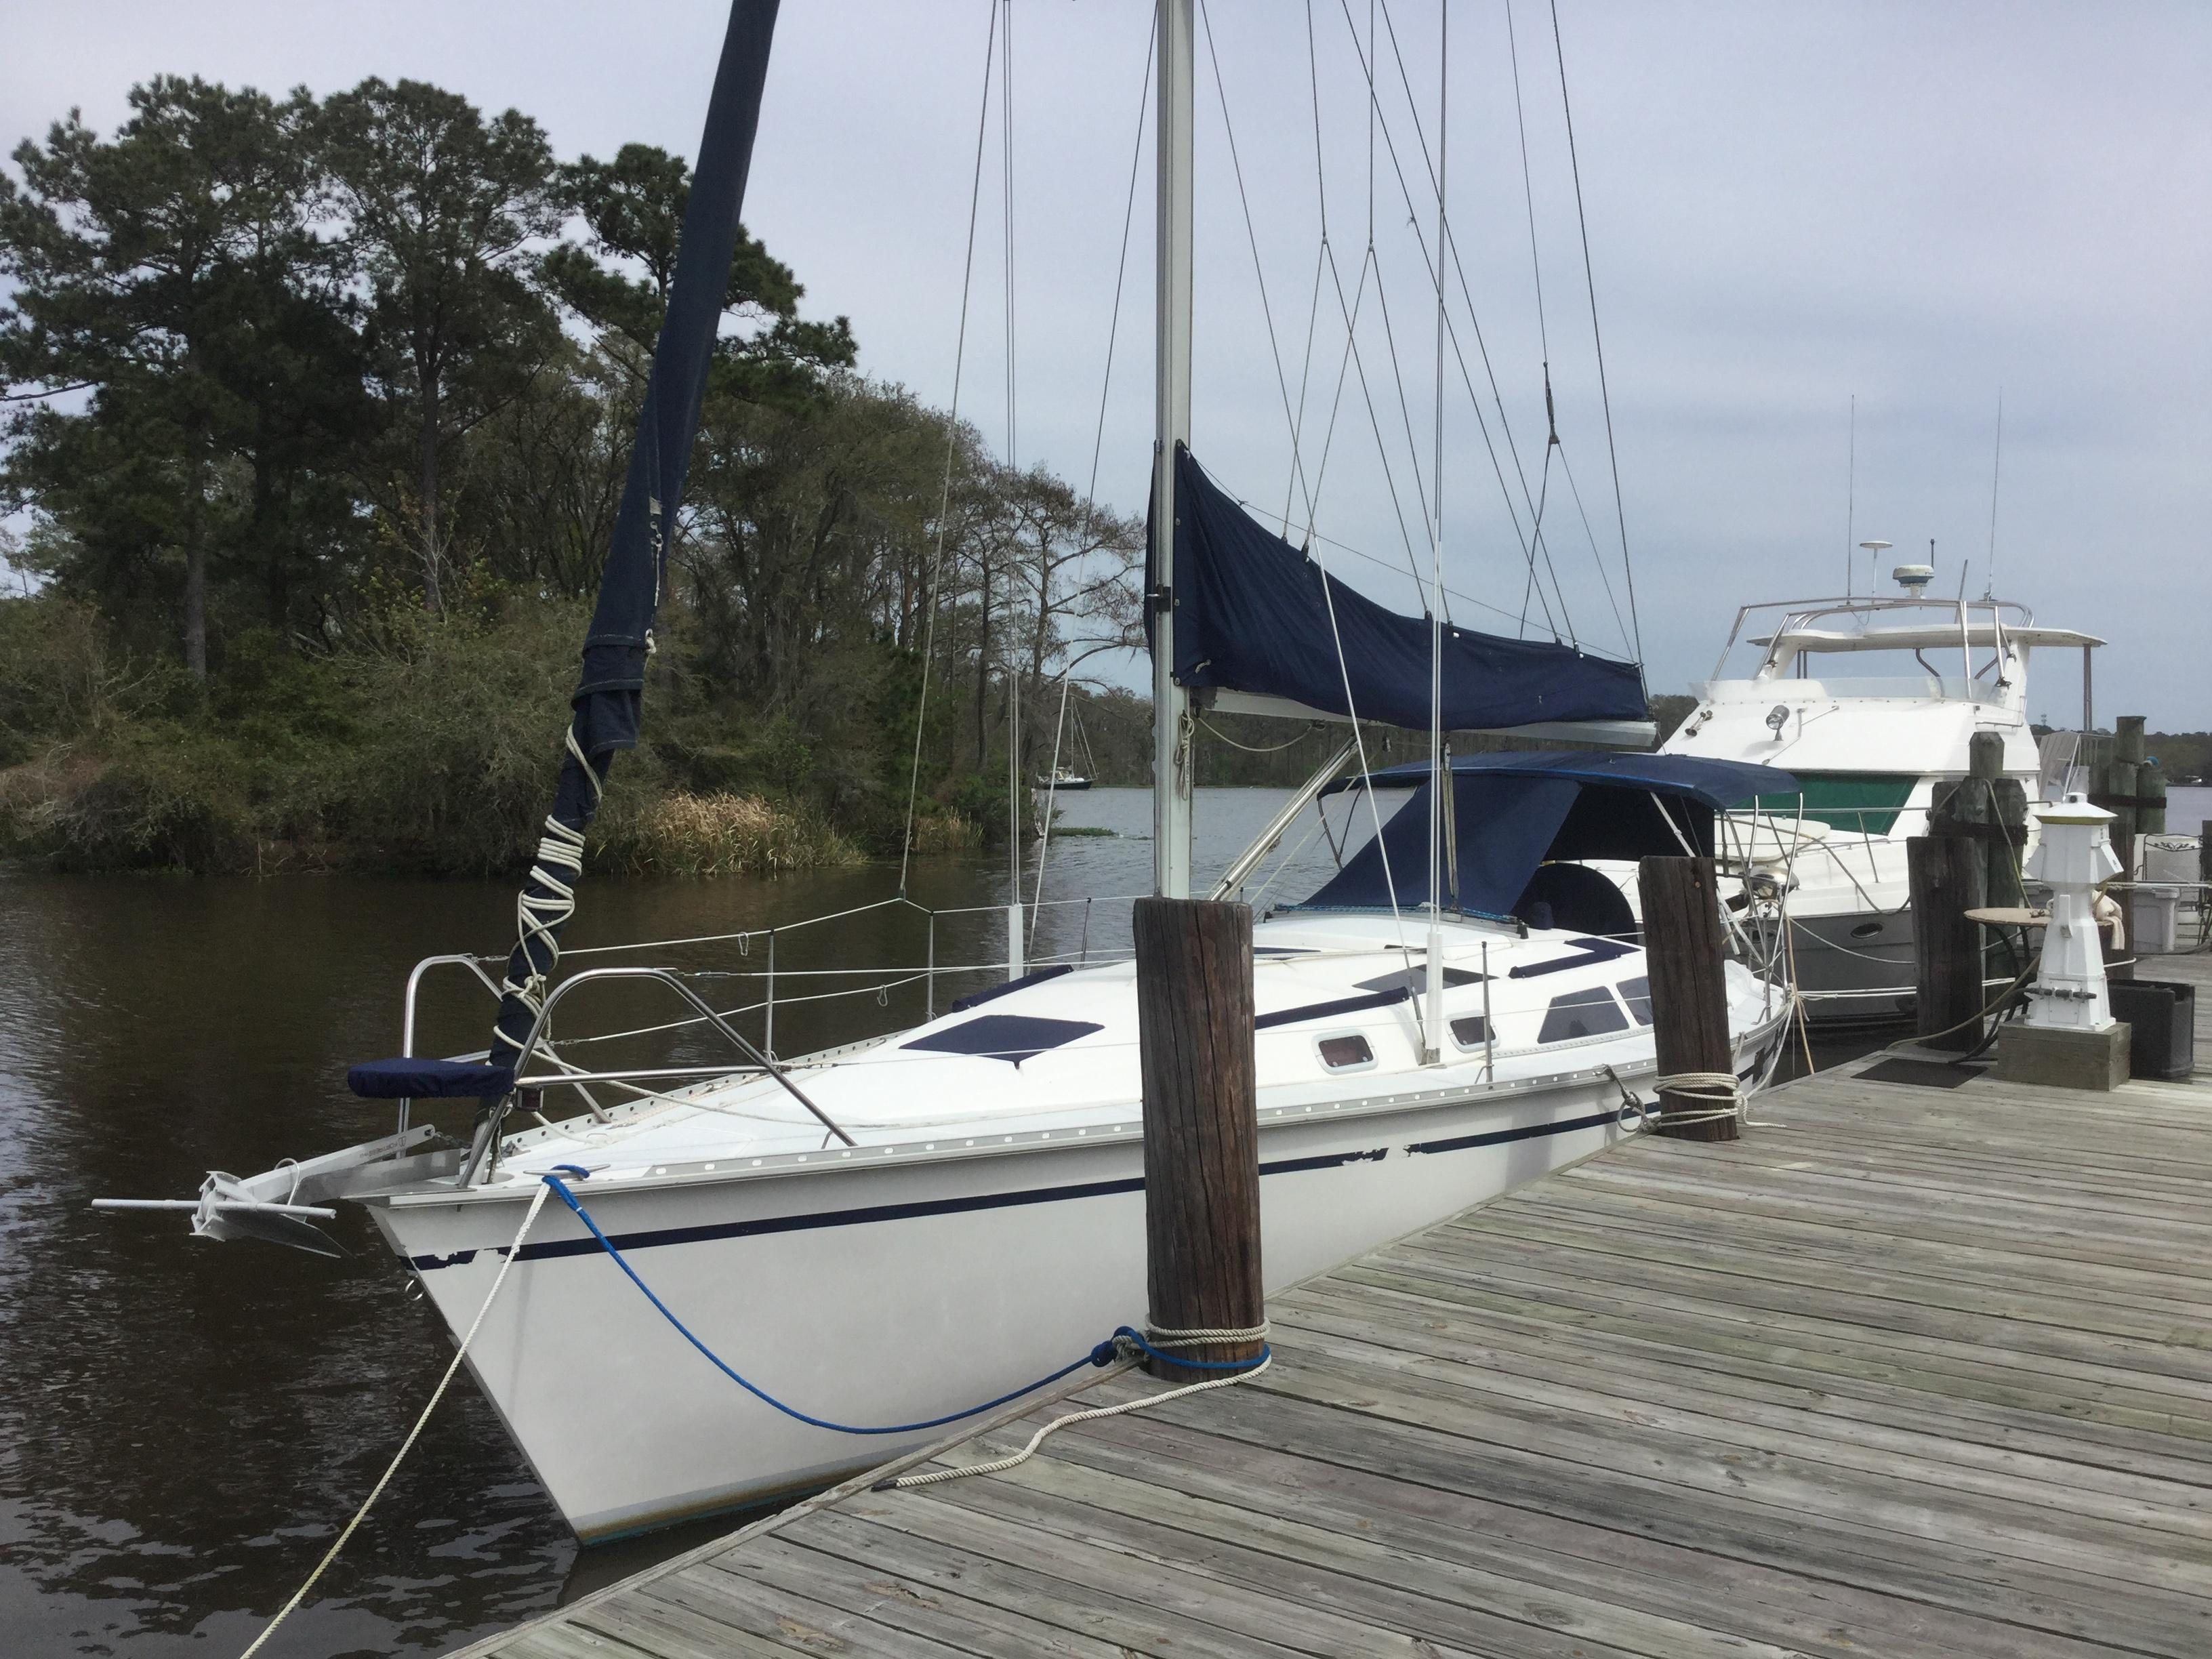 Sail boats for sale in Louisiana - Boat Trader